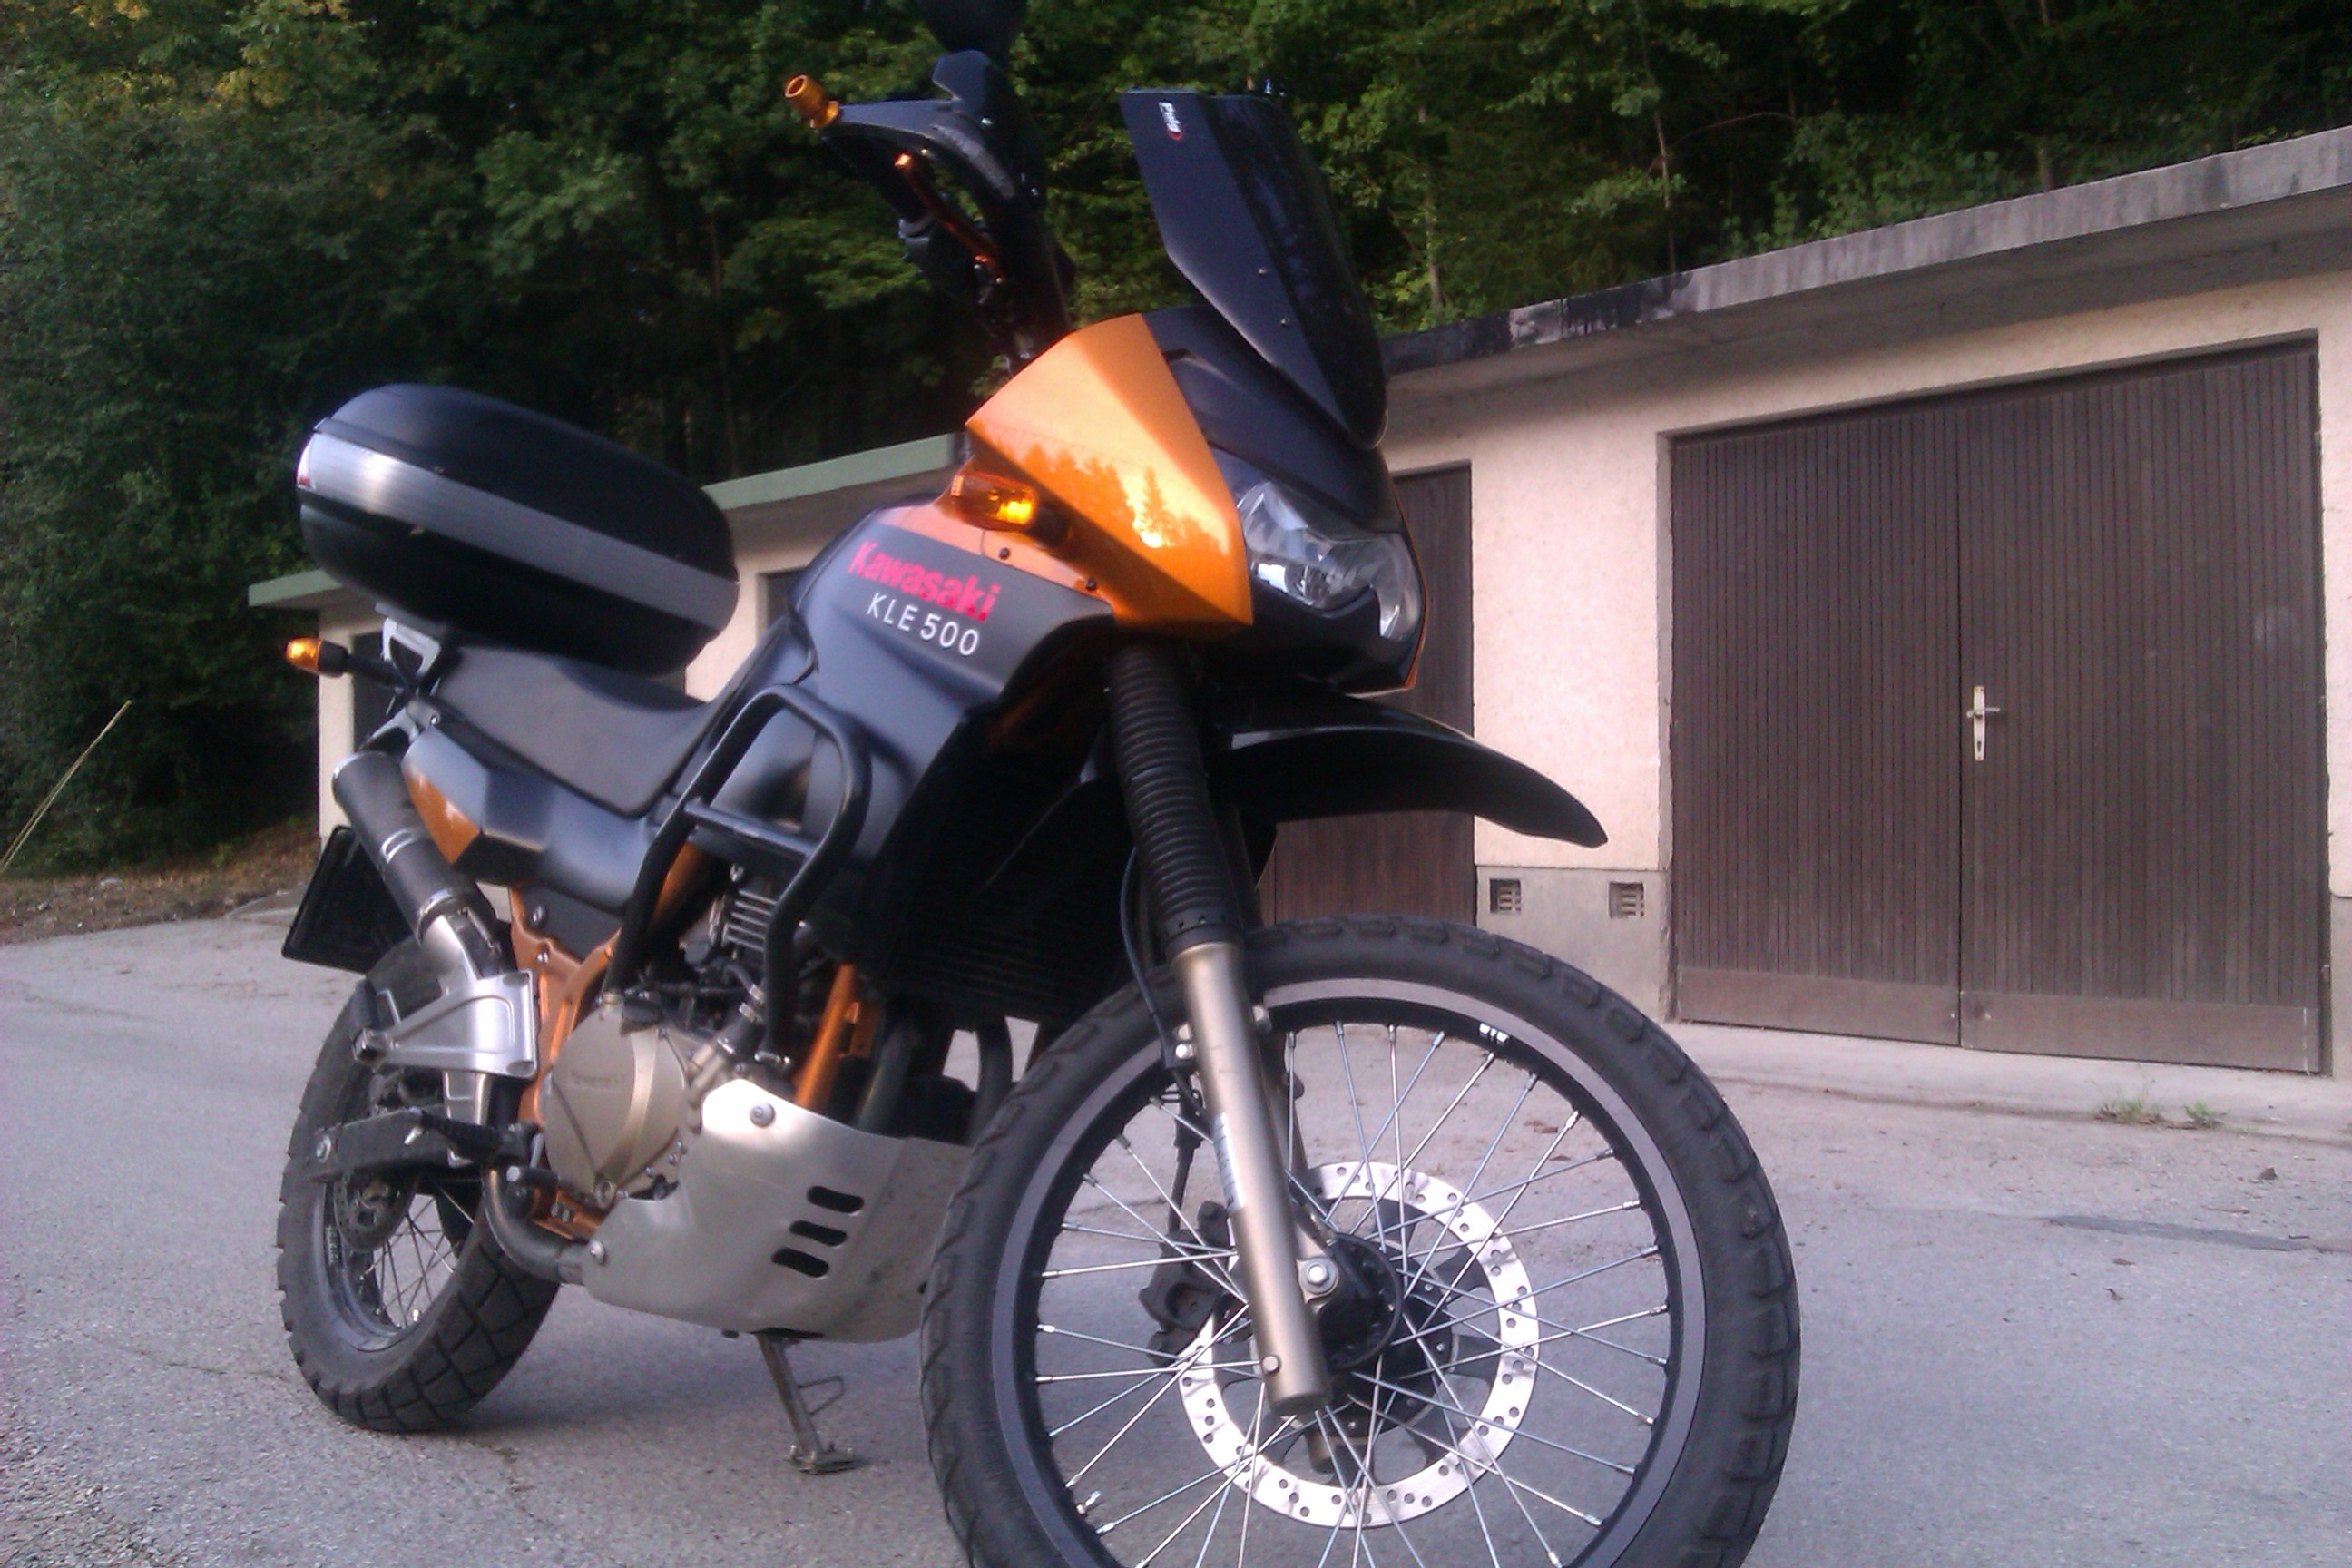 ... Kawasaki KLE500 (reduced effect) #14